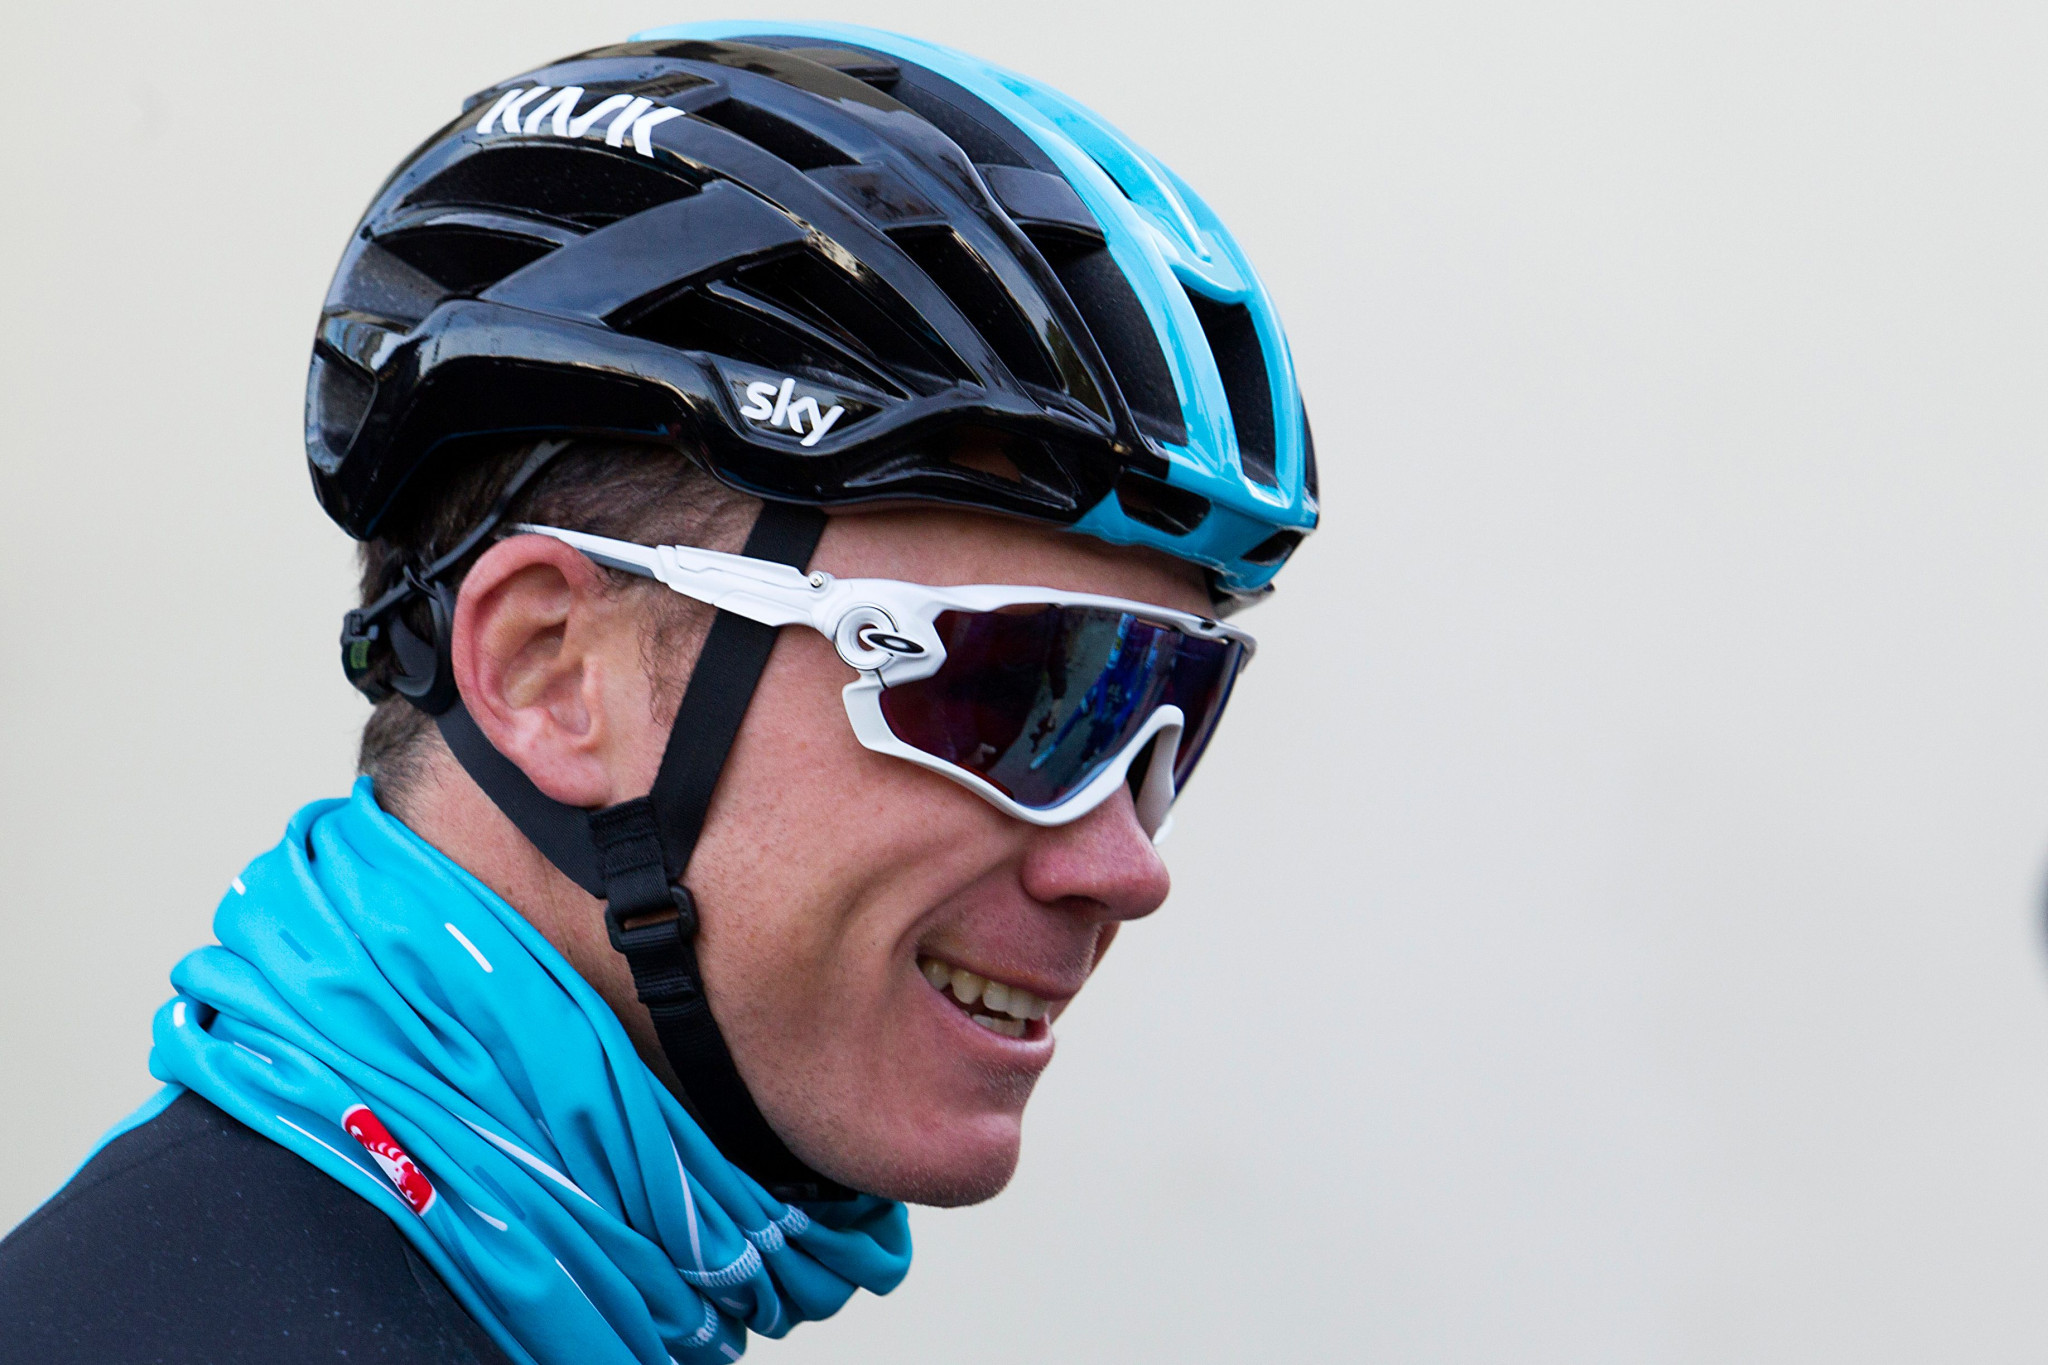 Froome issues denial after report says he is ready to accept drugs ban